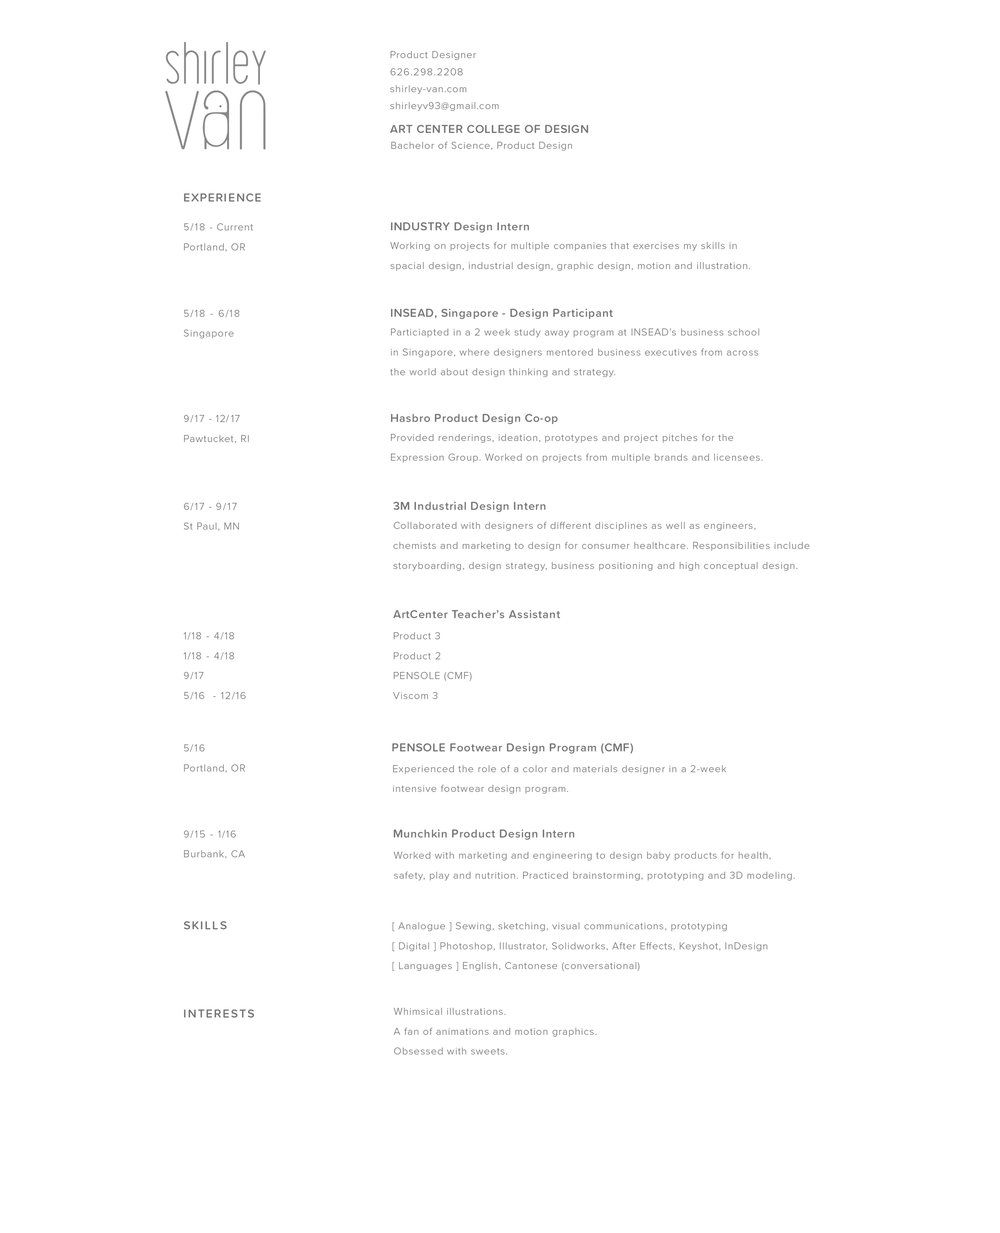 Shirley Van Resume_website.jpg